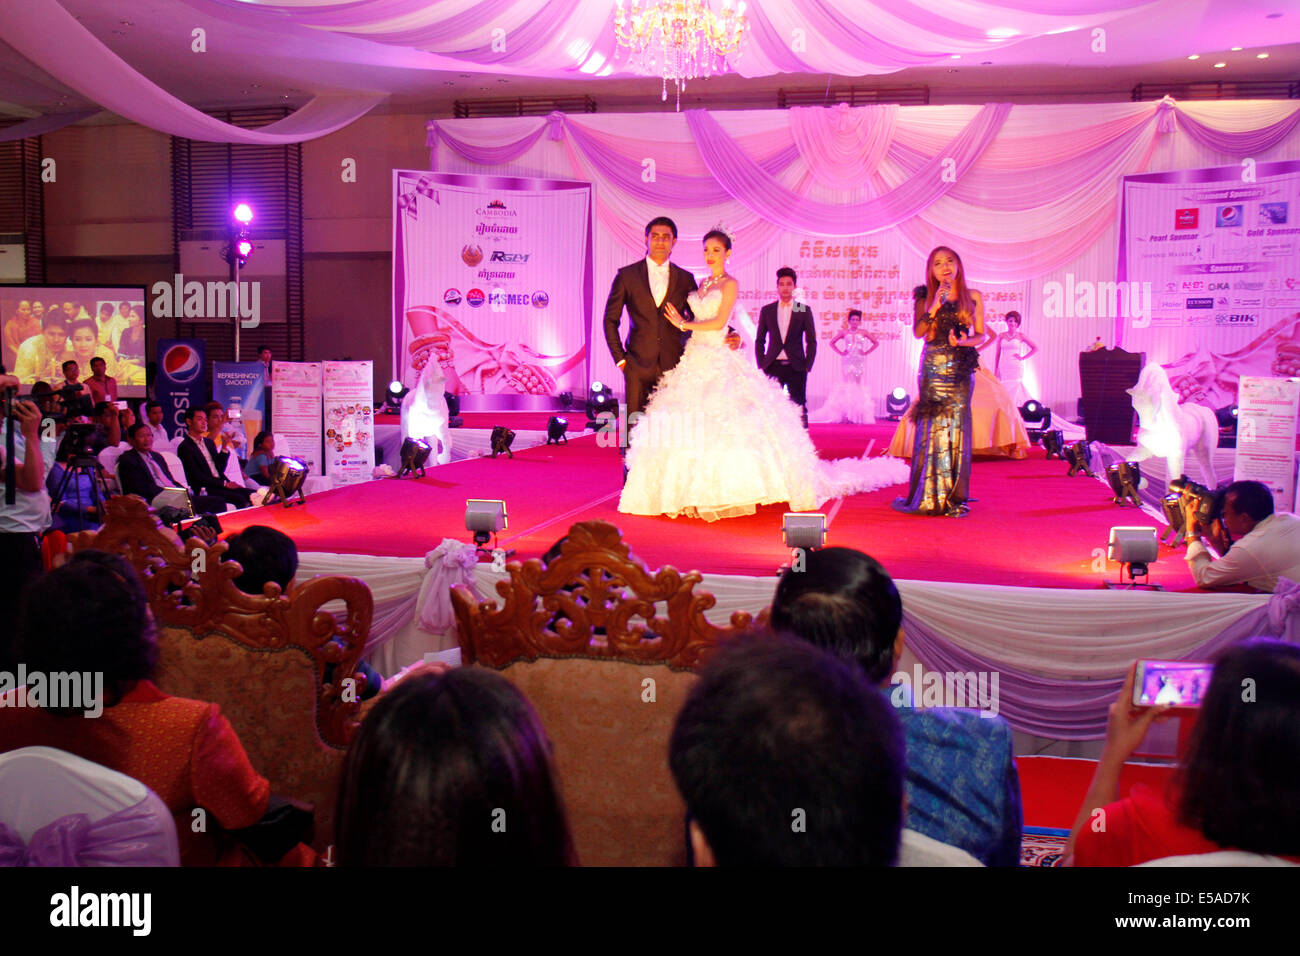 Khmer Wedding Imágenes De Stock & Khmer Wedding Fotos De Stock - Alamy